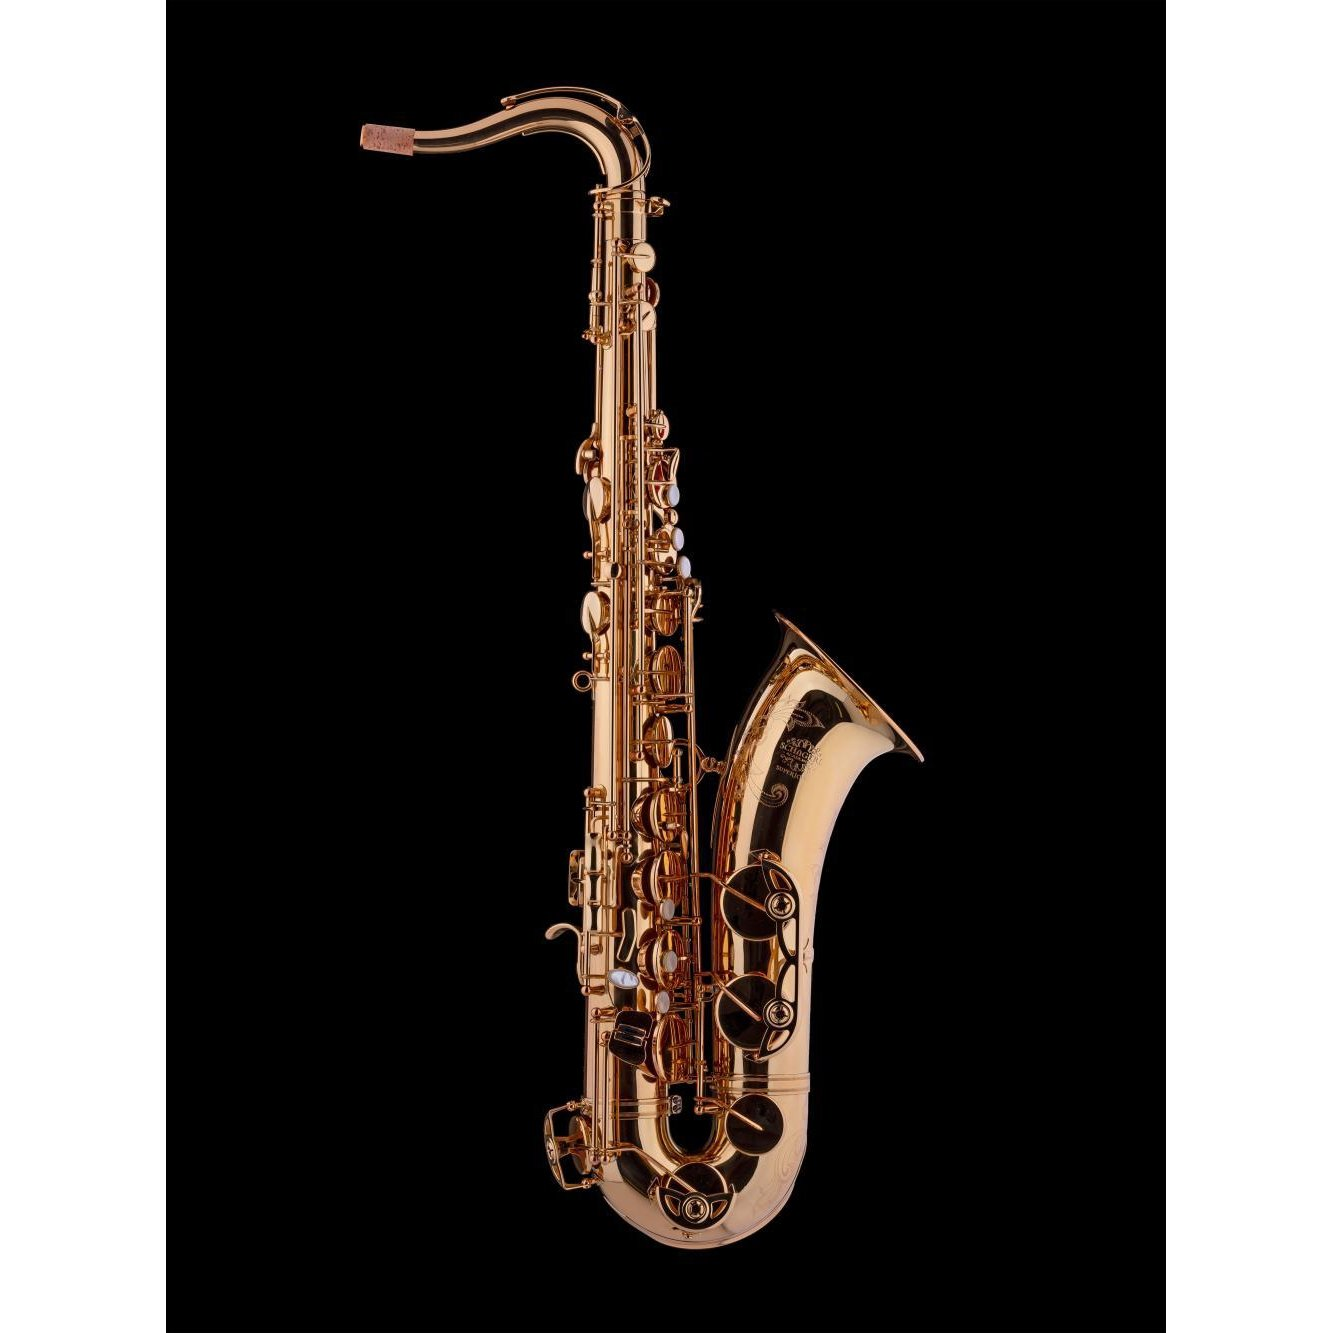 Schagerl - Superior Series - T-2 Tenor Saxophones-Saxophone-Schagerl-Lacquered-Music Elements